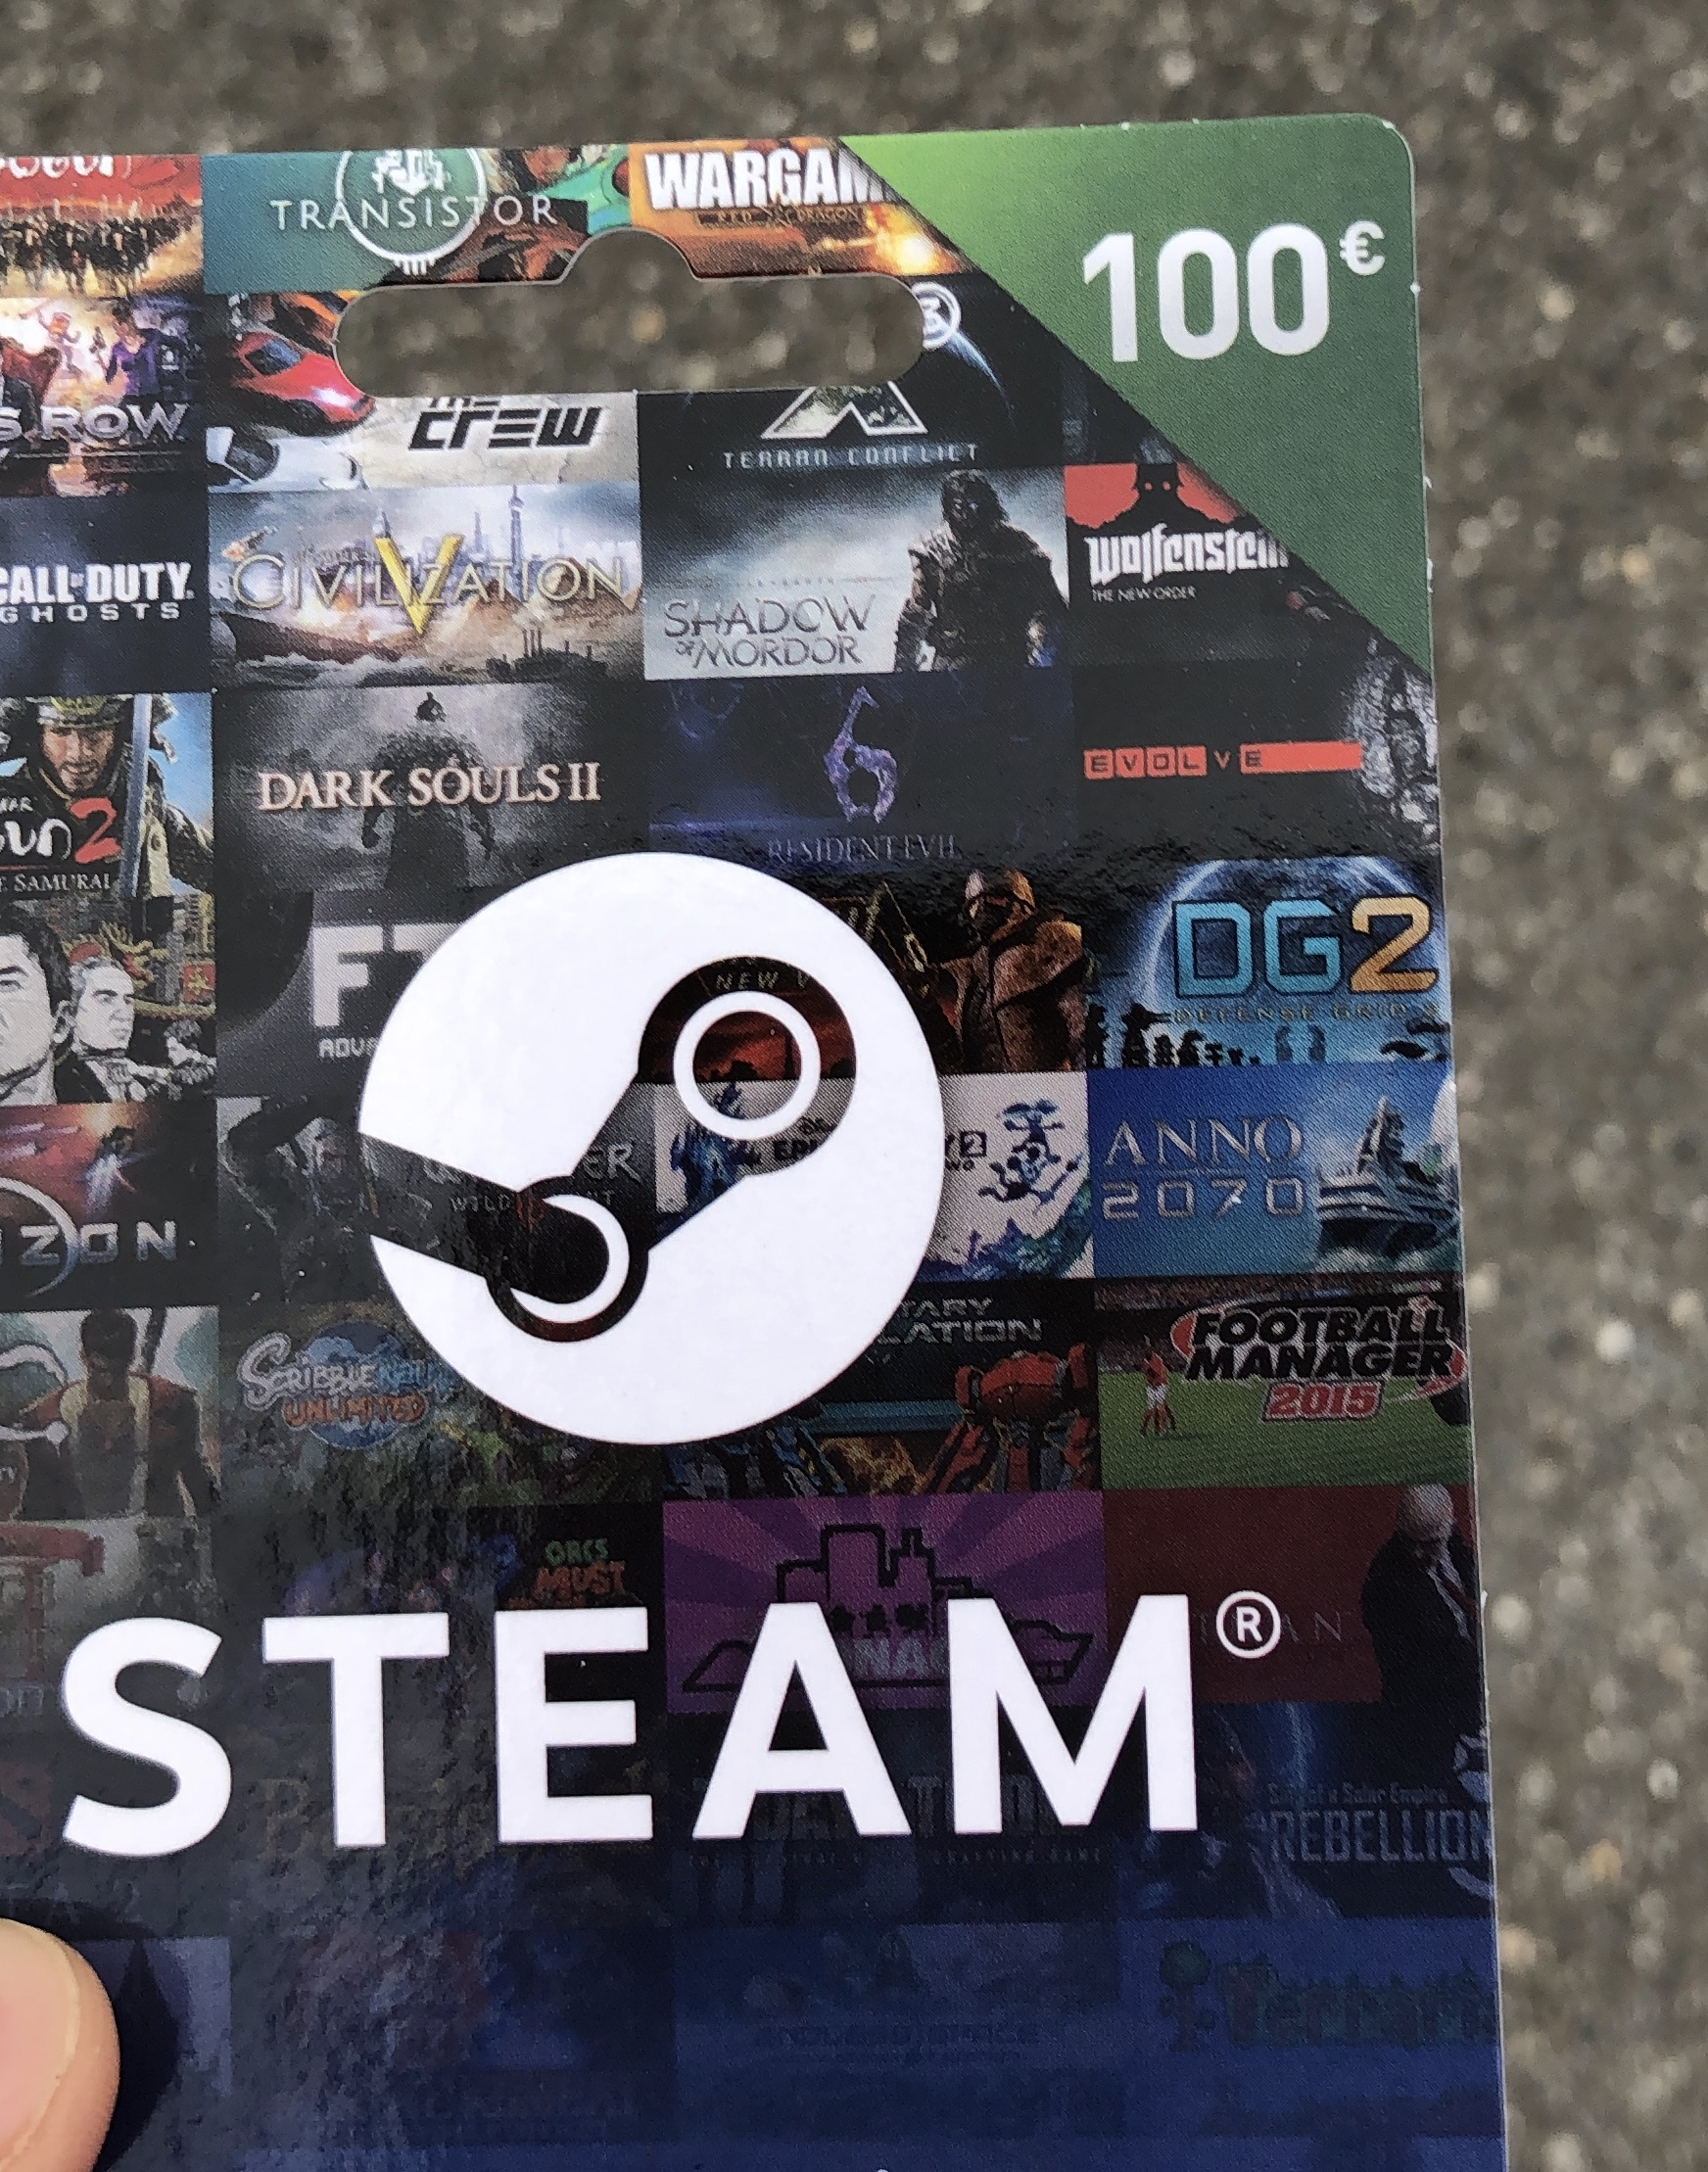 100� Steam Gift Card Giveaway Giveaway Image